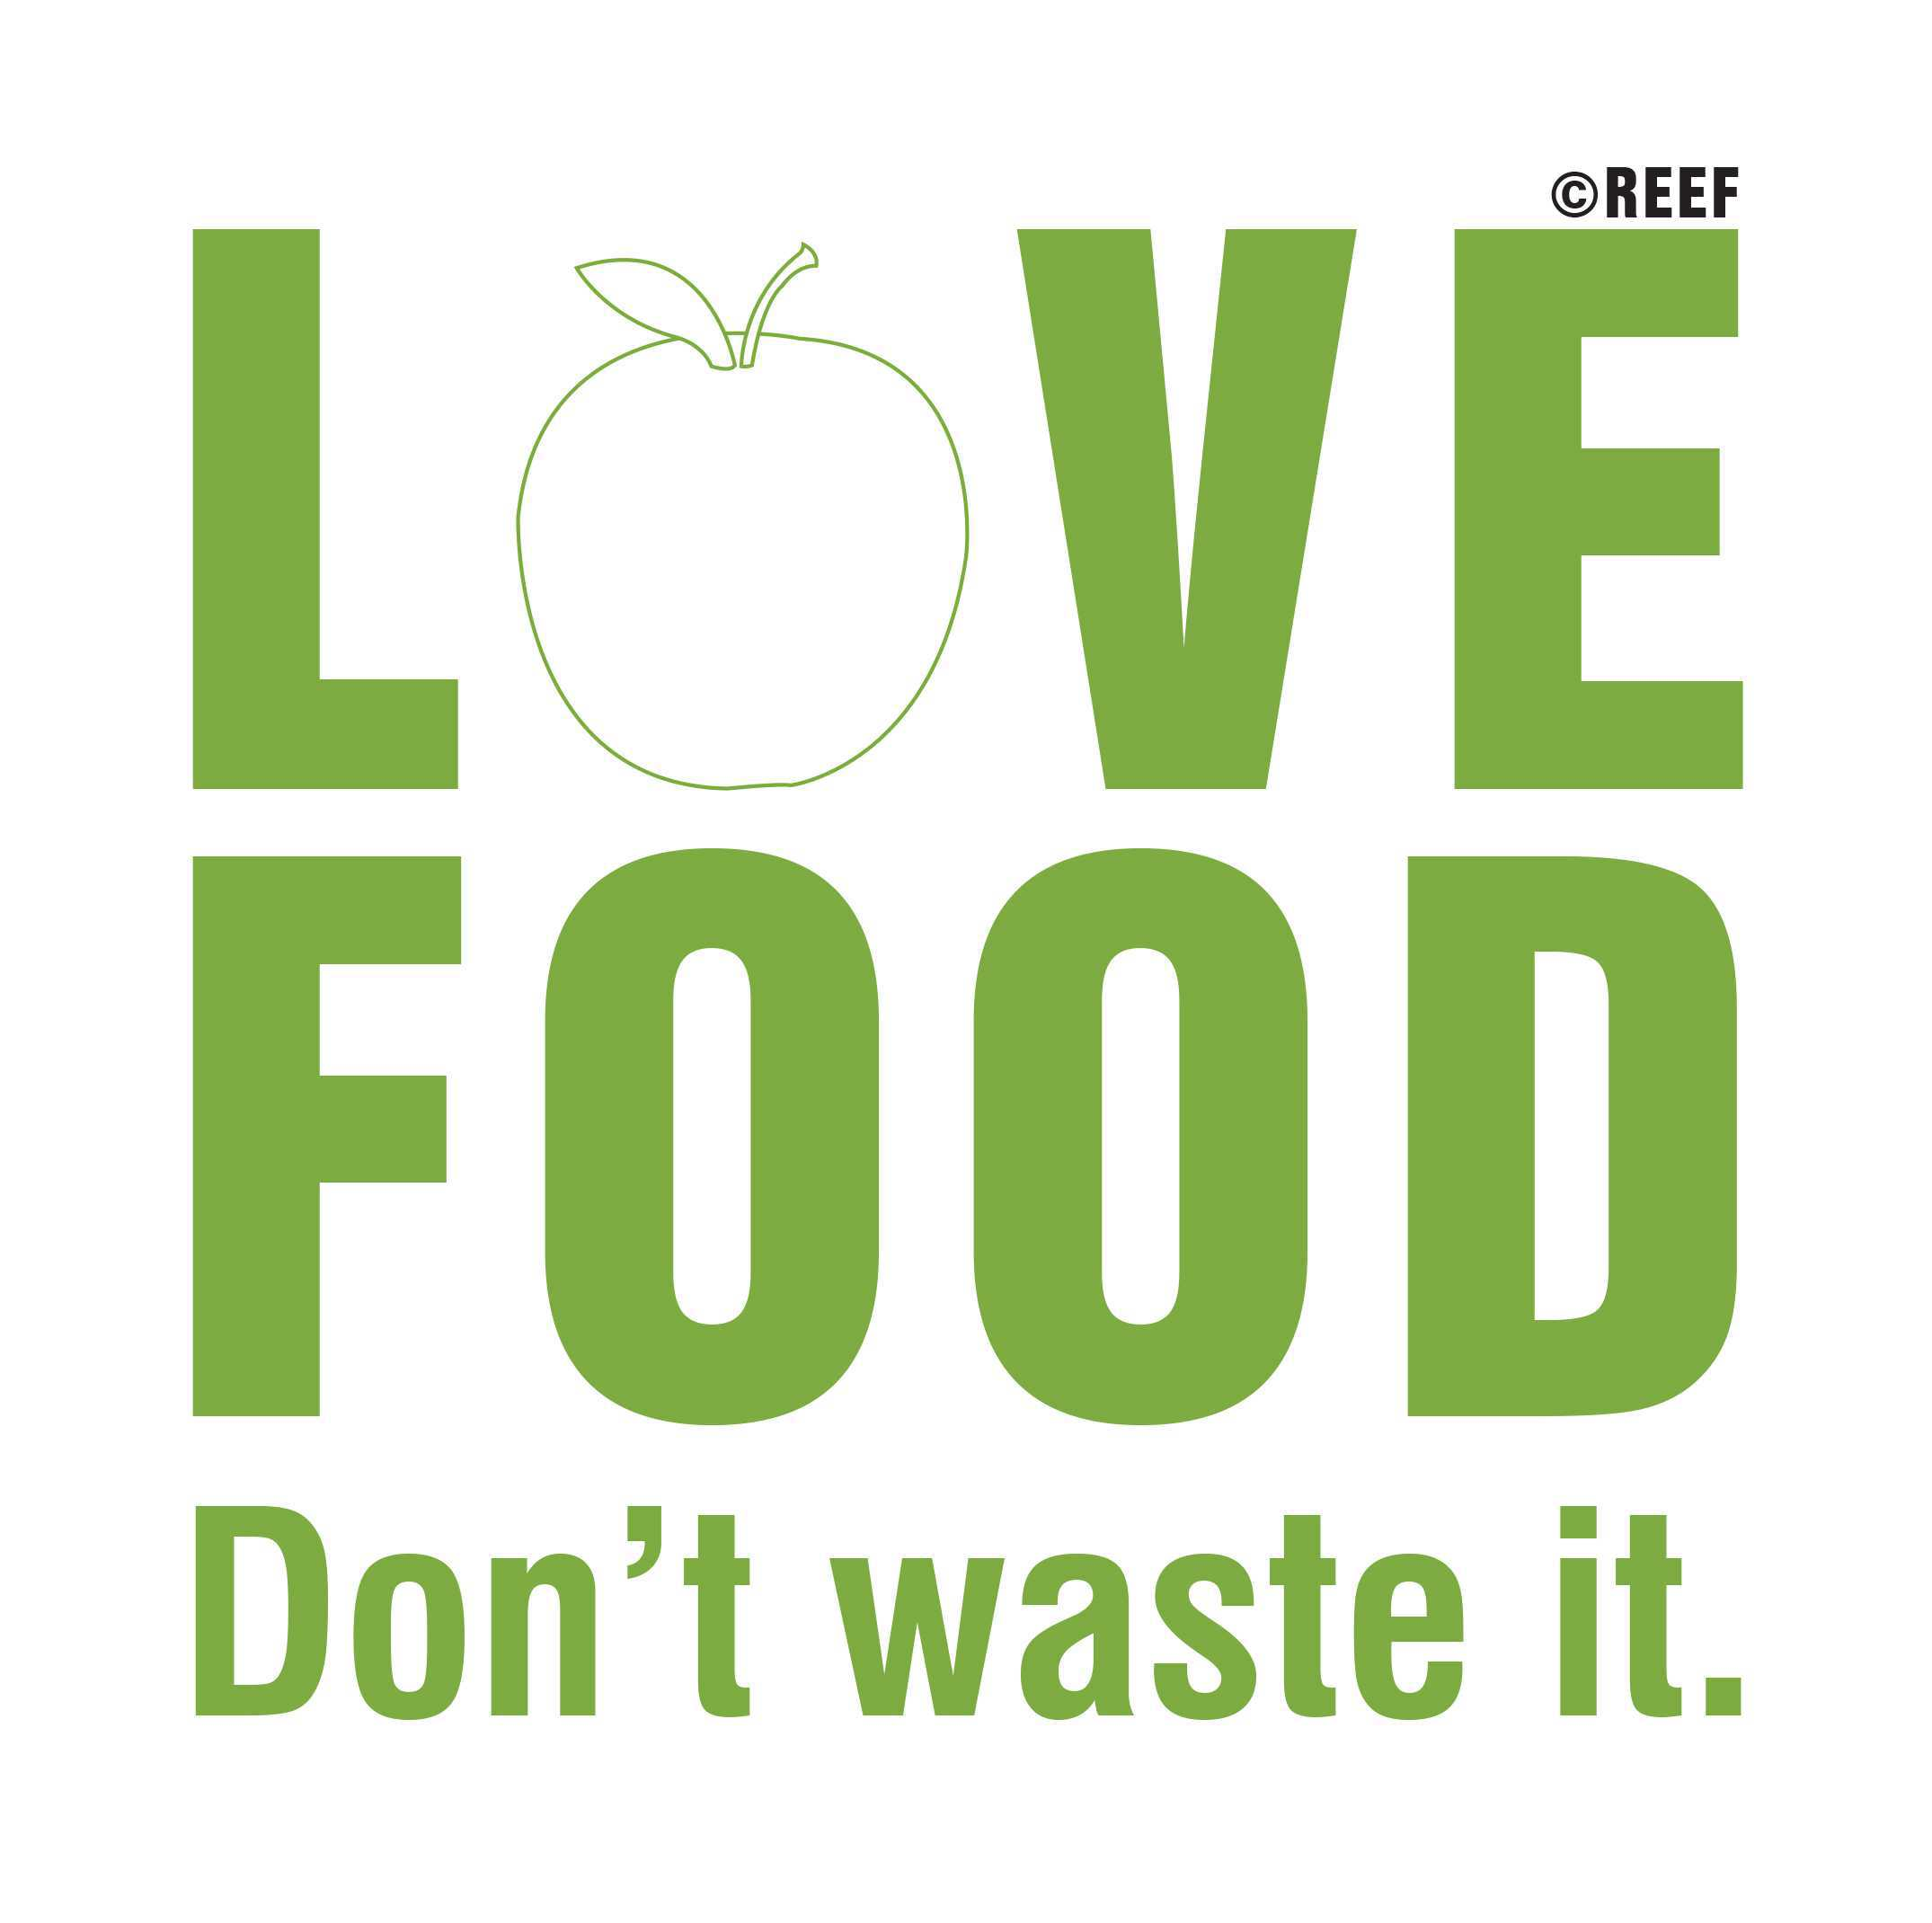 essay on dont waste food